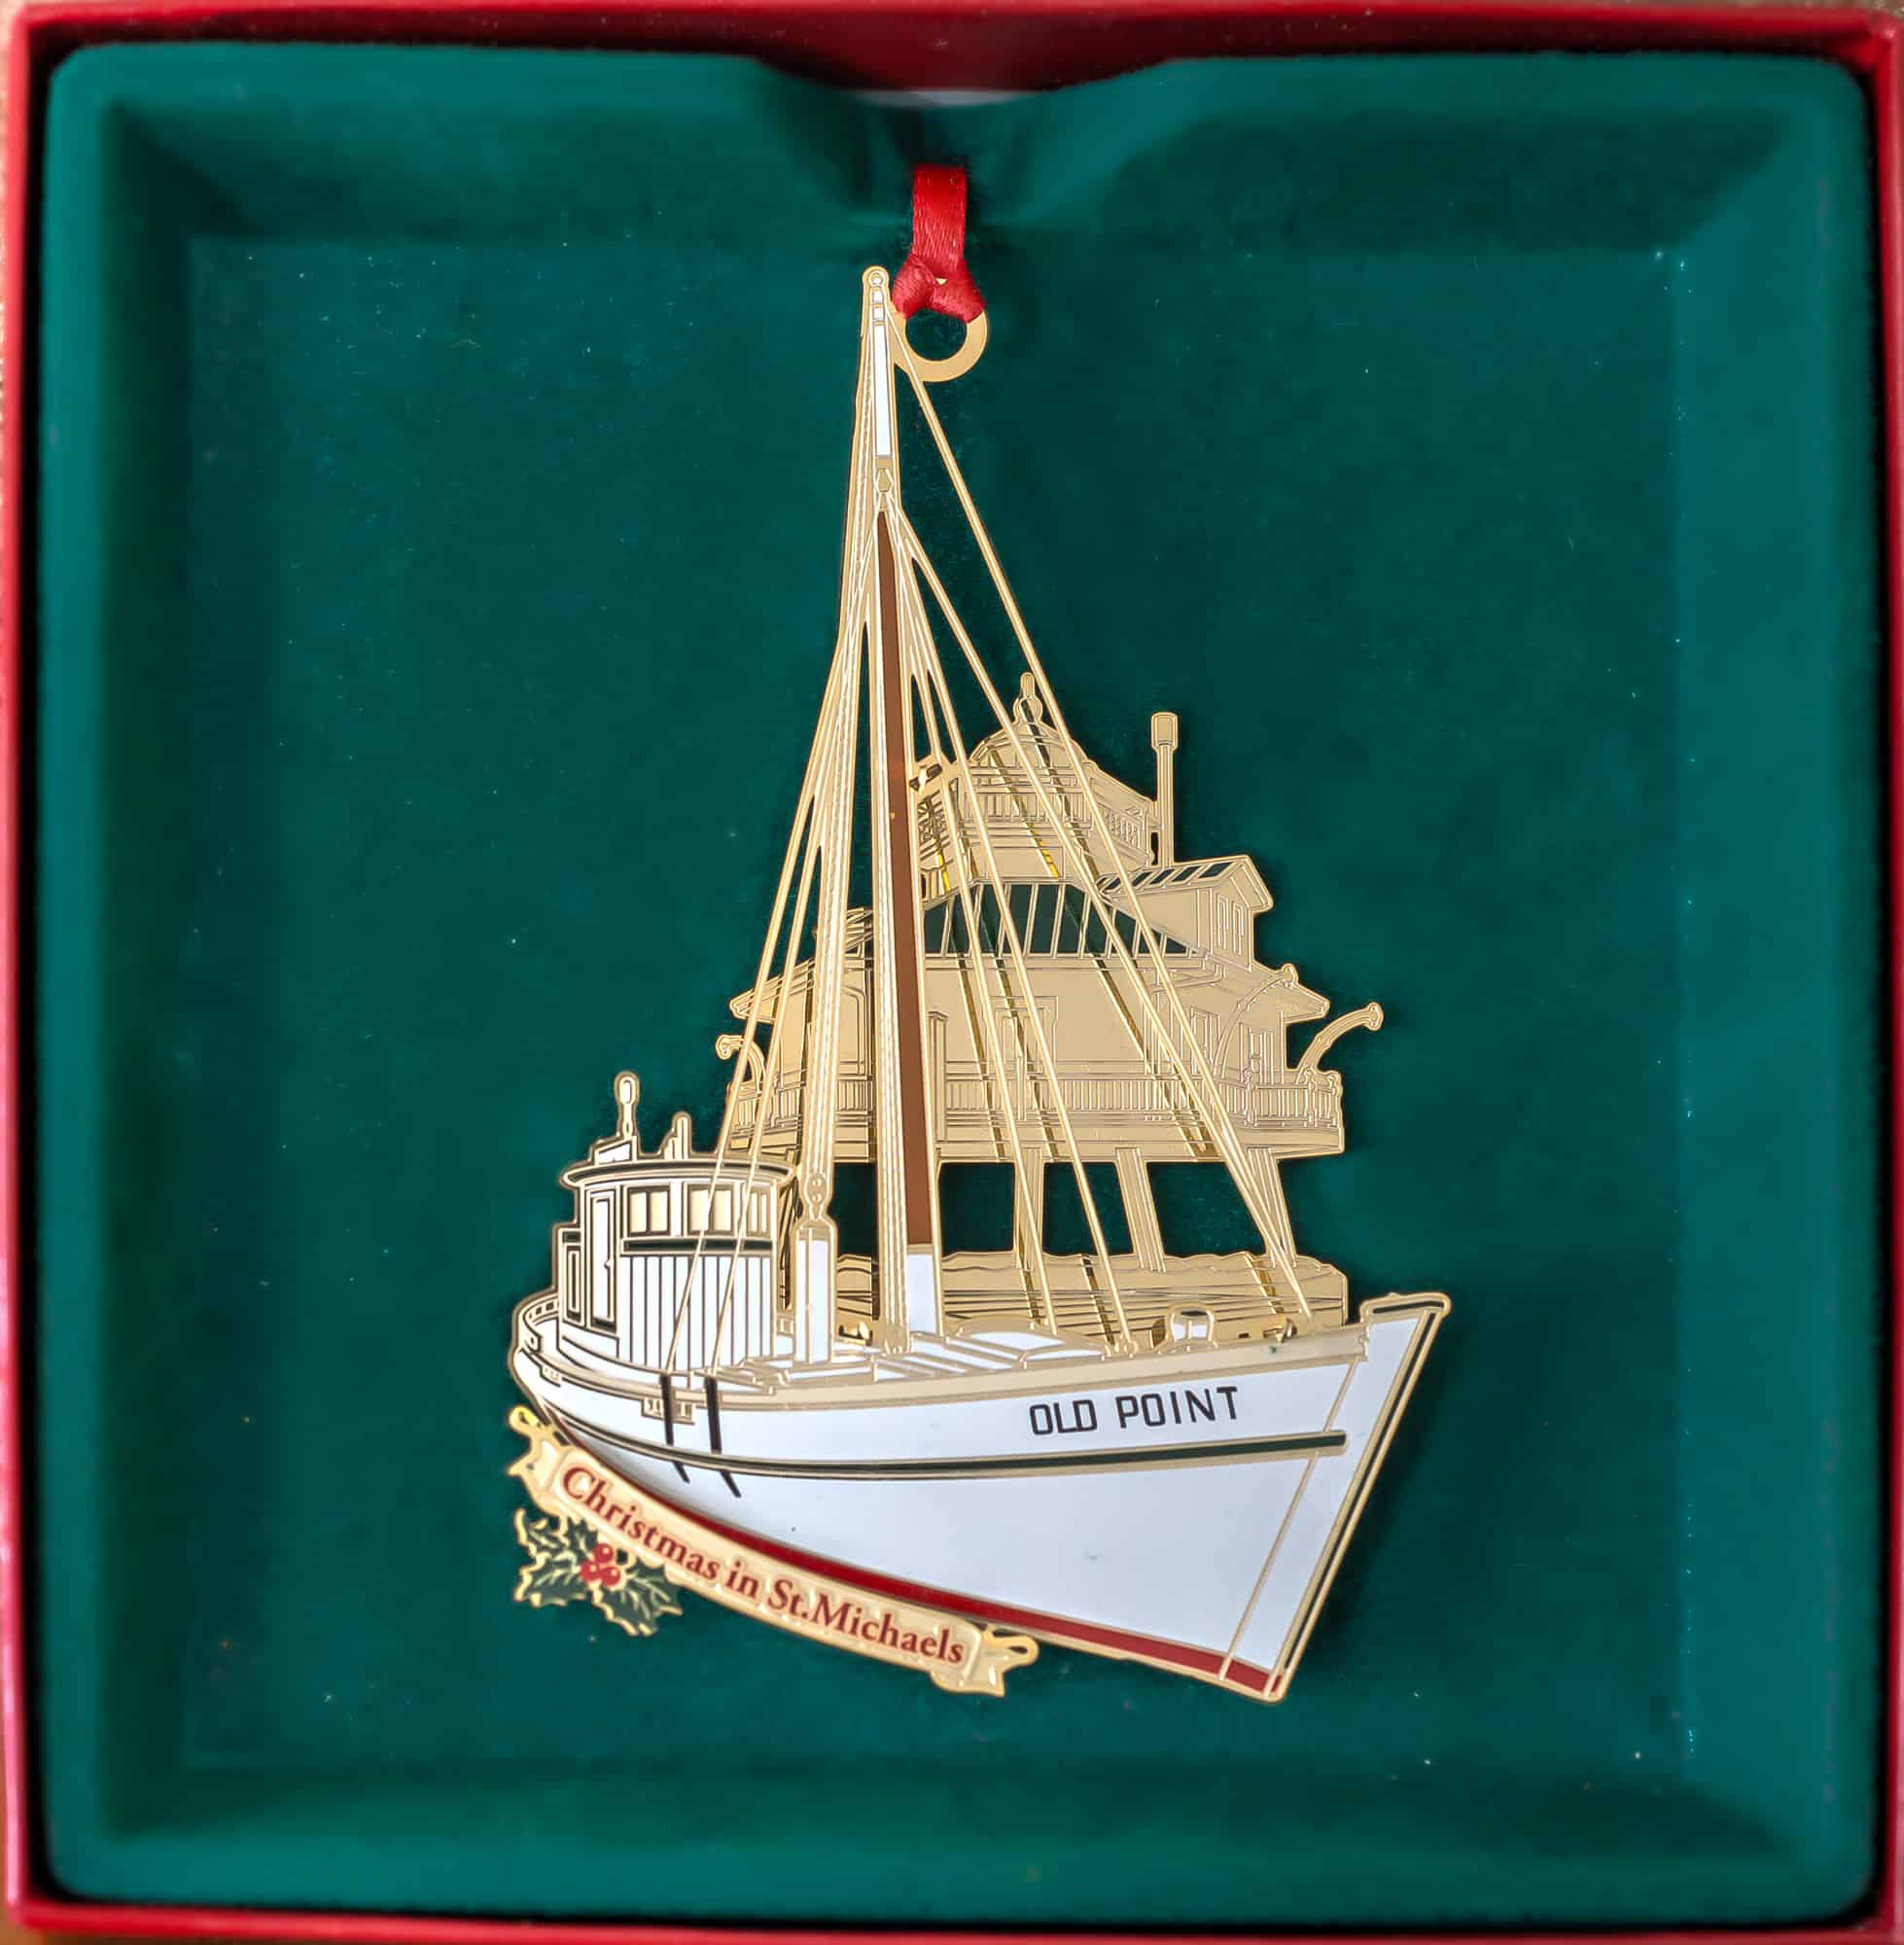 2015 christmas in saint michaels ornament - Christmas In St Michaels